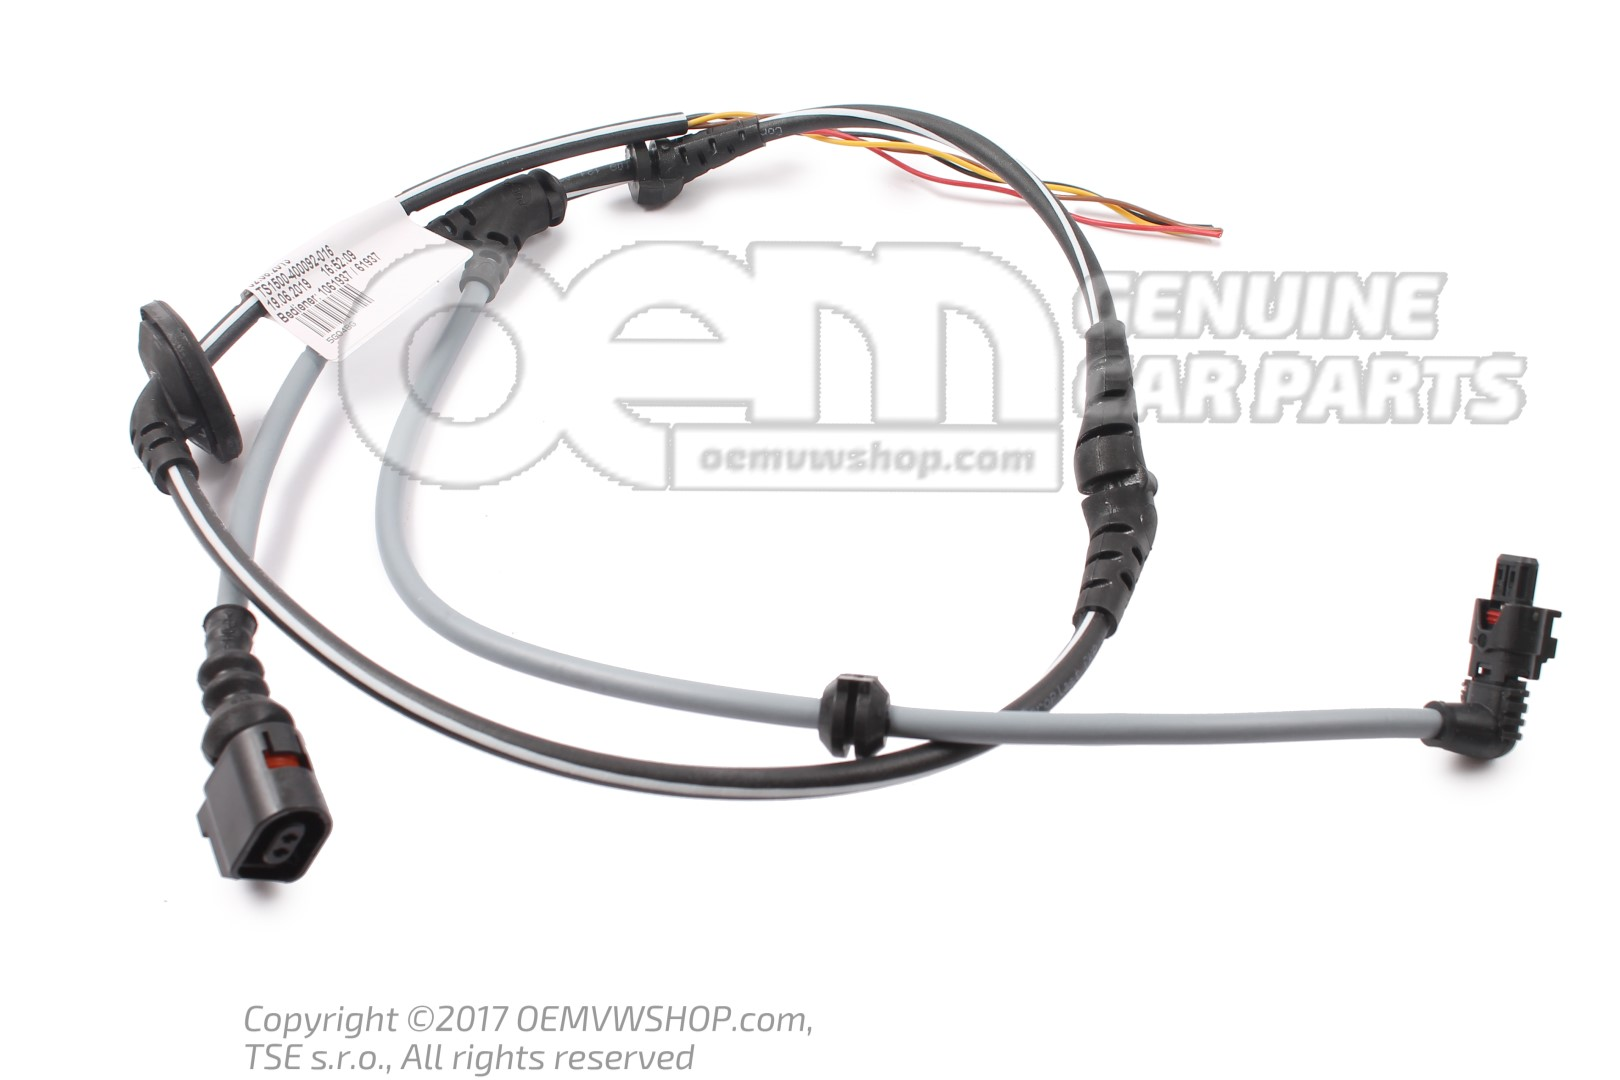 Wiring harness for speed sensor 40G40BG